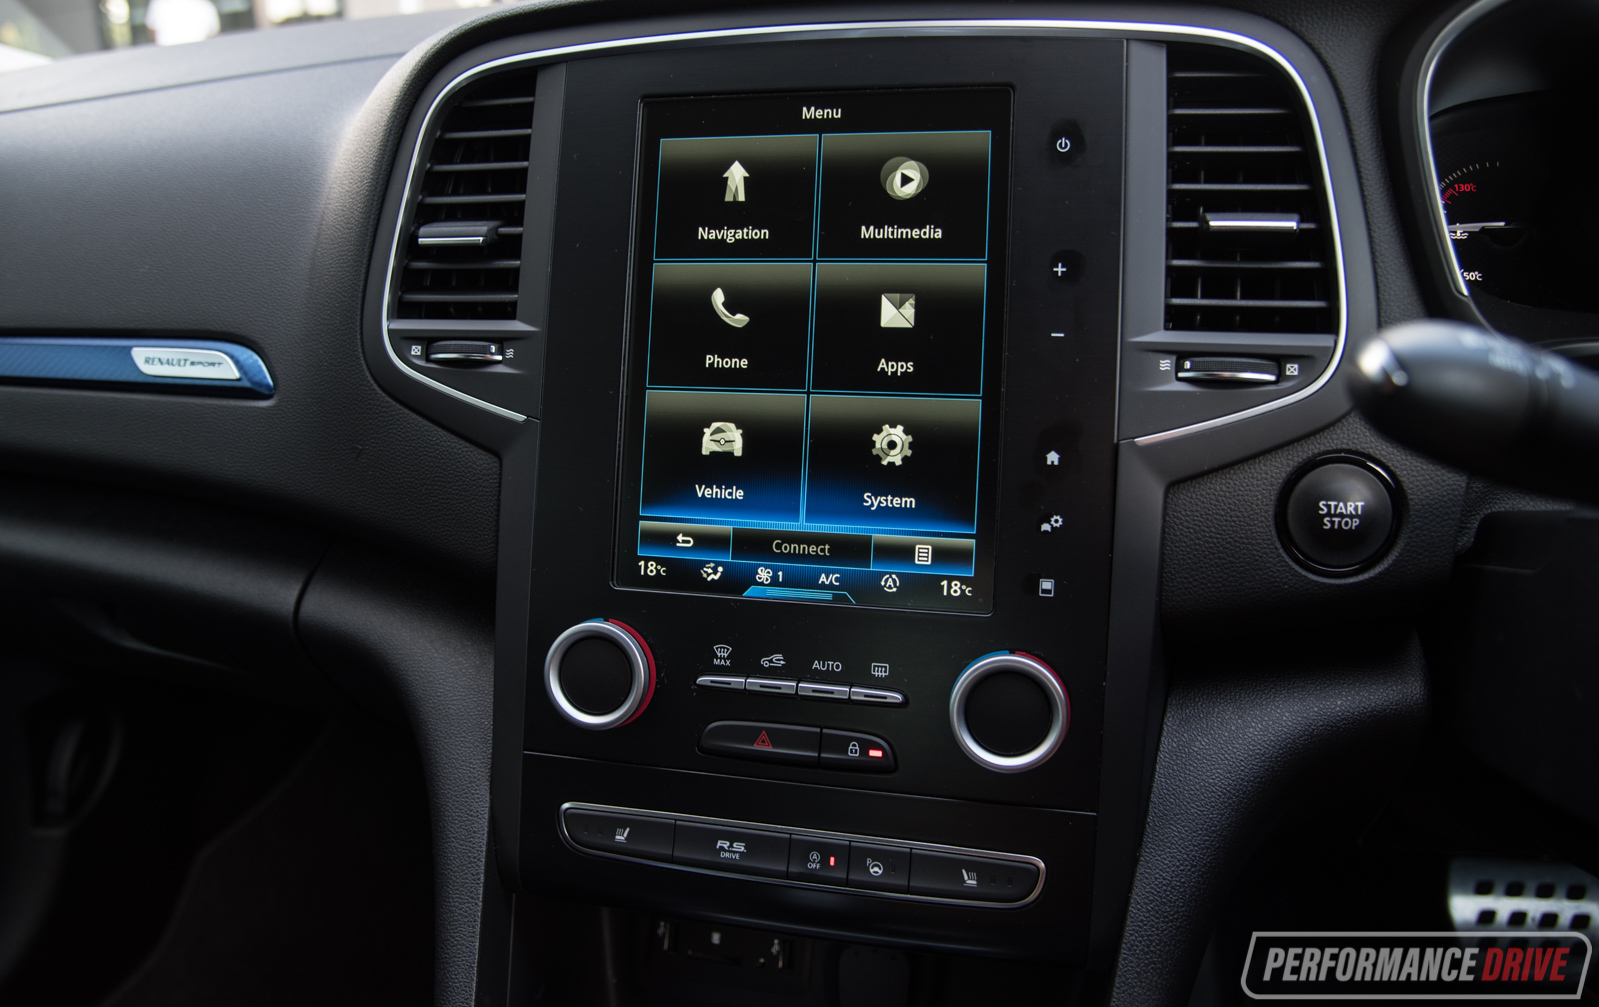 Fine-tuning the climate control to your liking is a distracting affair too, with the menu taking over the entire screen and many functions easy to miss with ...